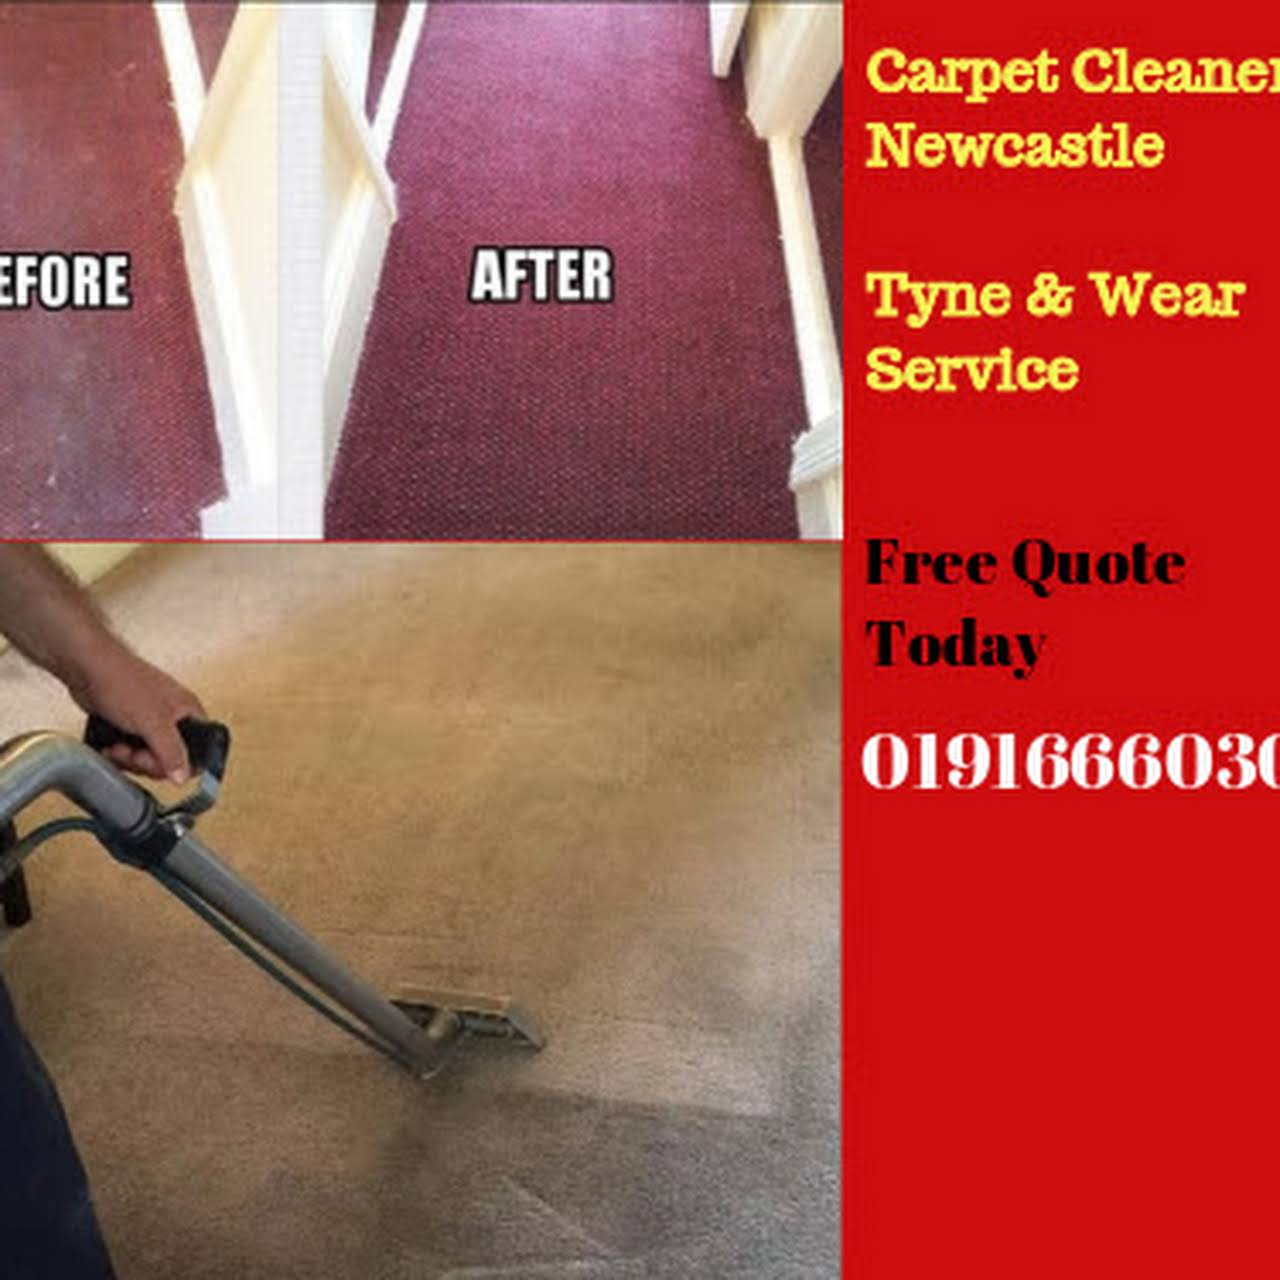 Carpet Cleaning Service Newcastle Upon